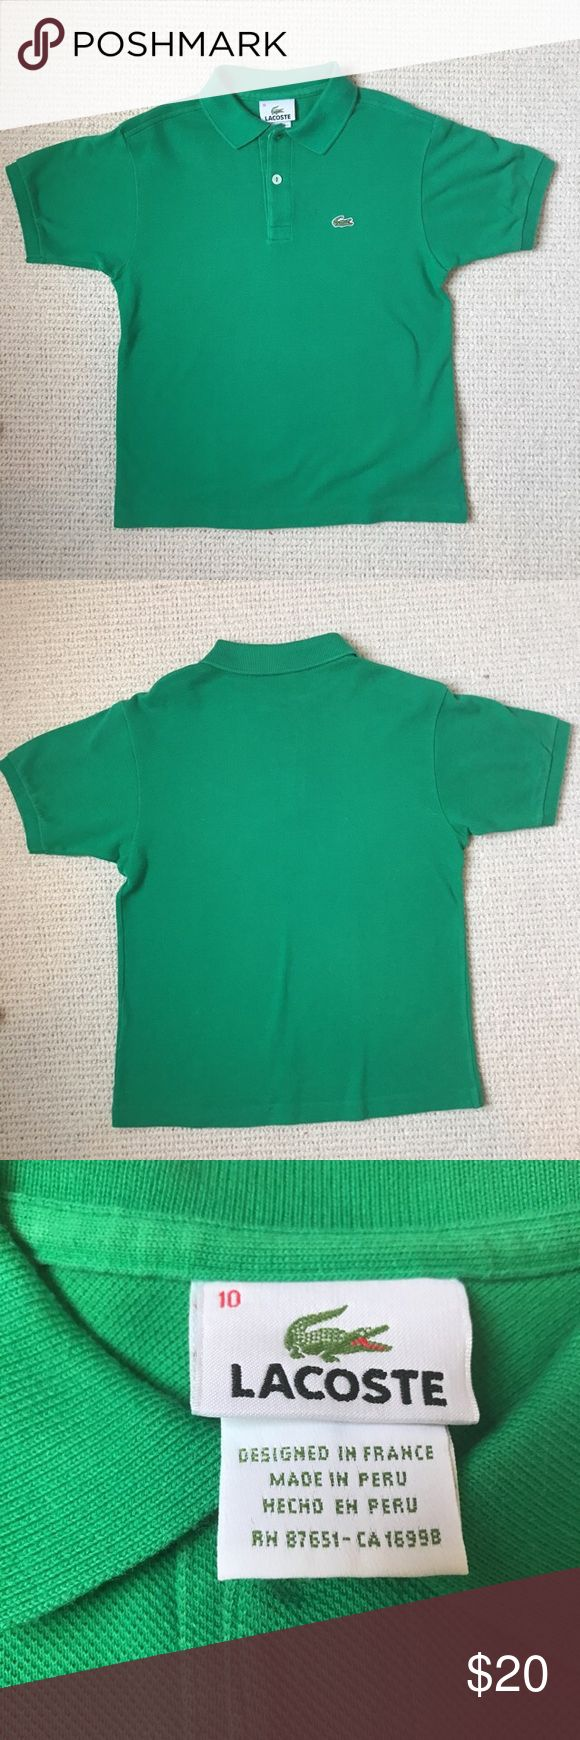 Youth Lacoste polo Like new green Lacoste Polo shirt, youth size 10. Lacoste Shirts & Tops Polos